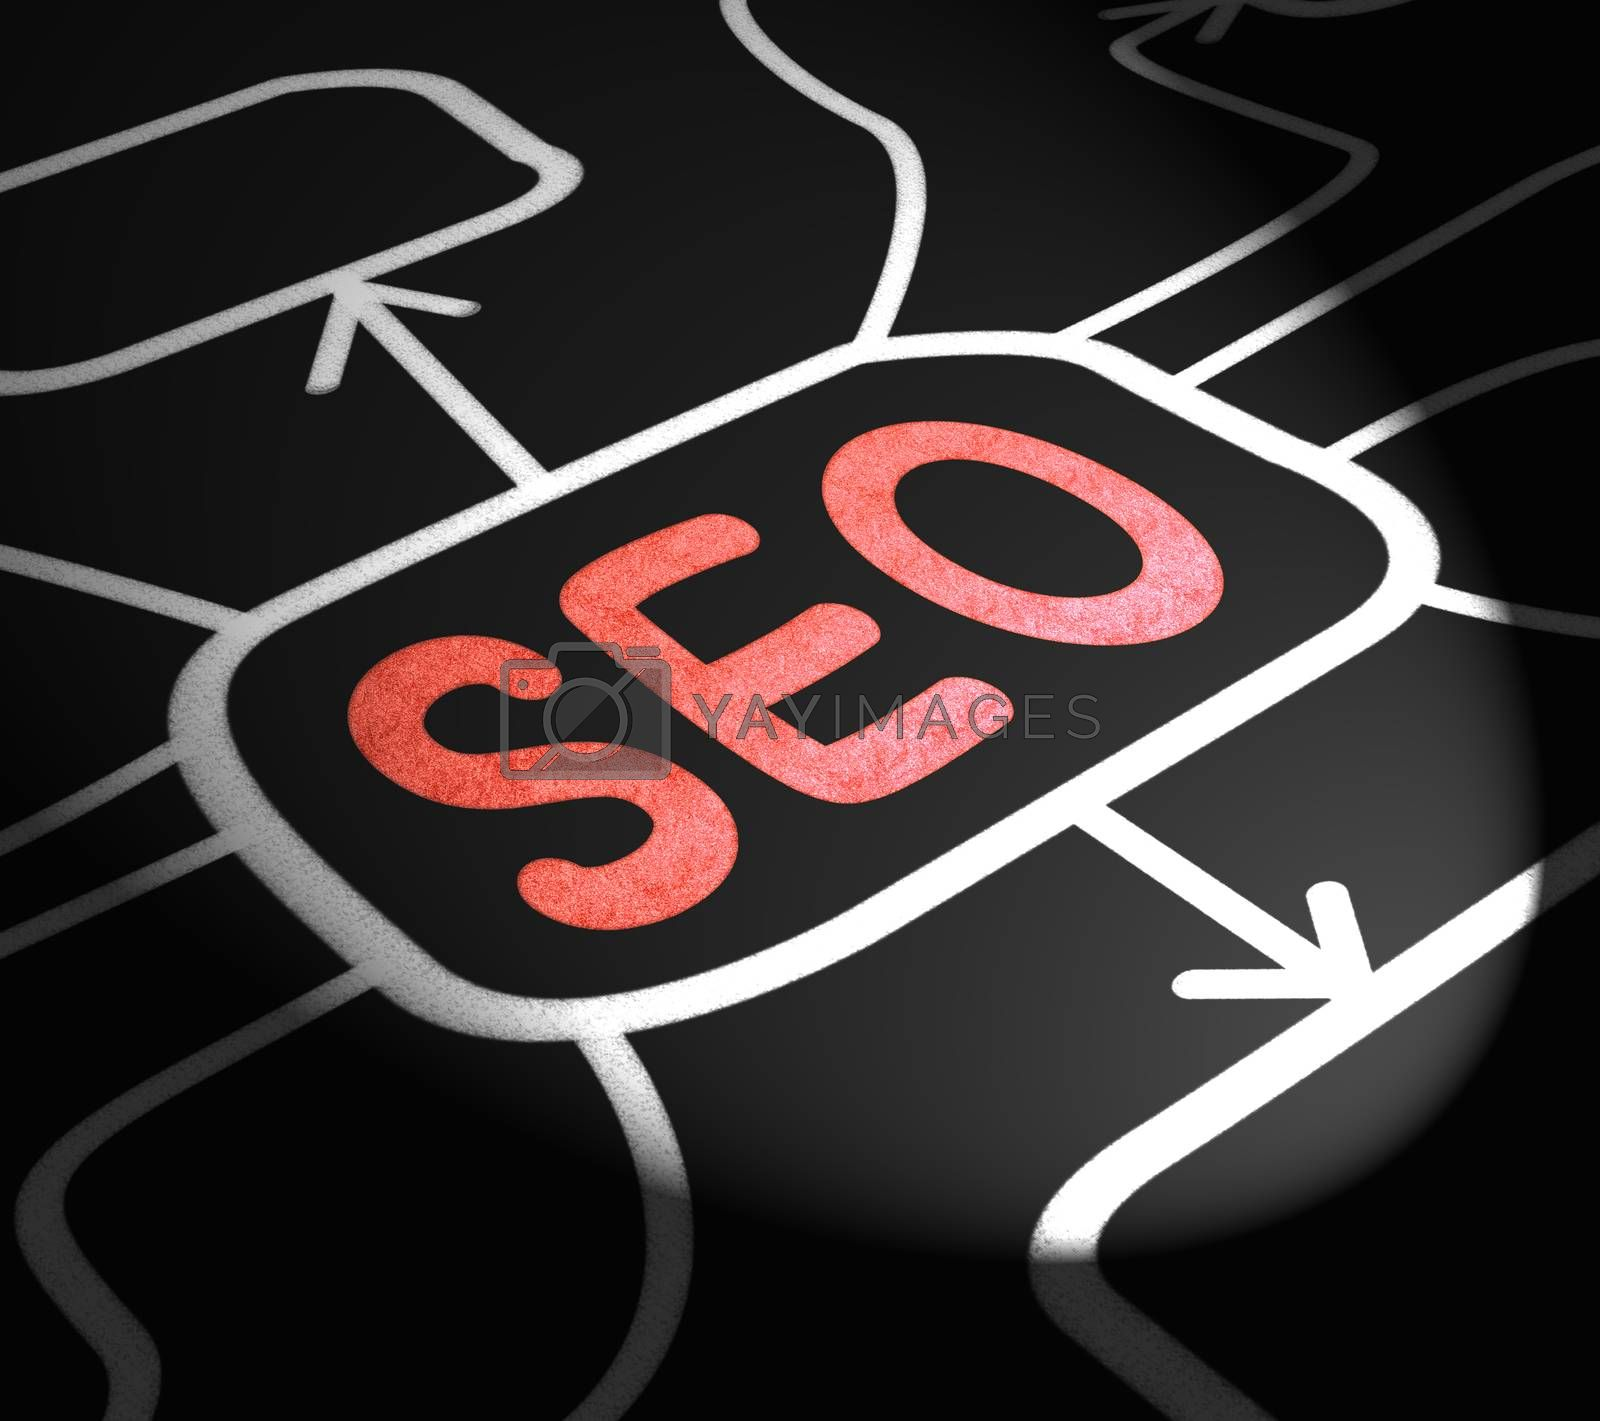 SEO Arrows Means Search Engine Optimization On Web by stuartmiles